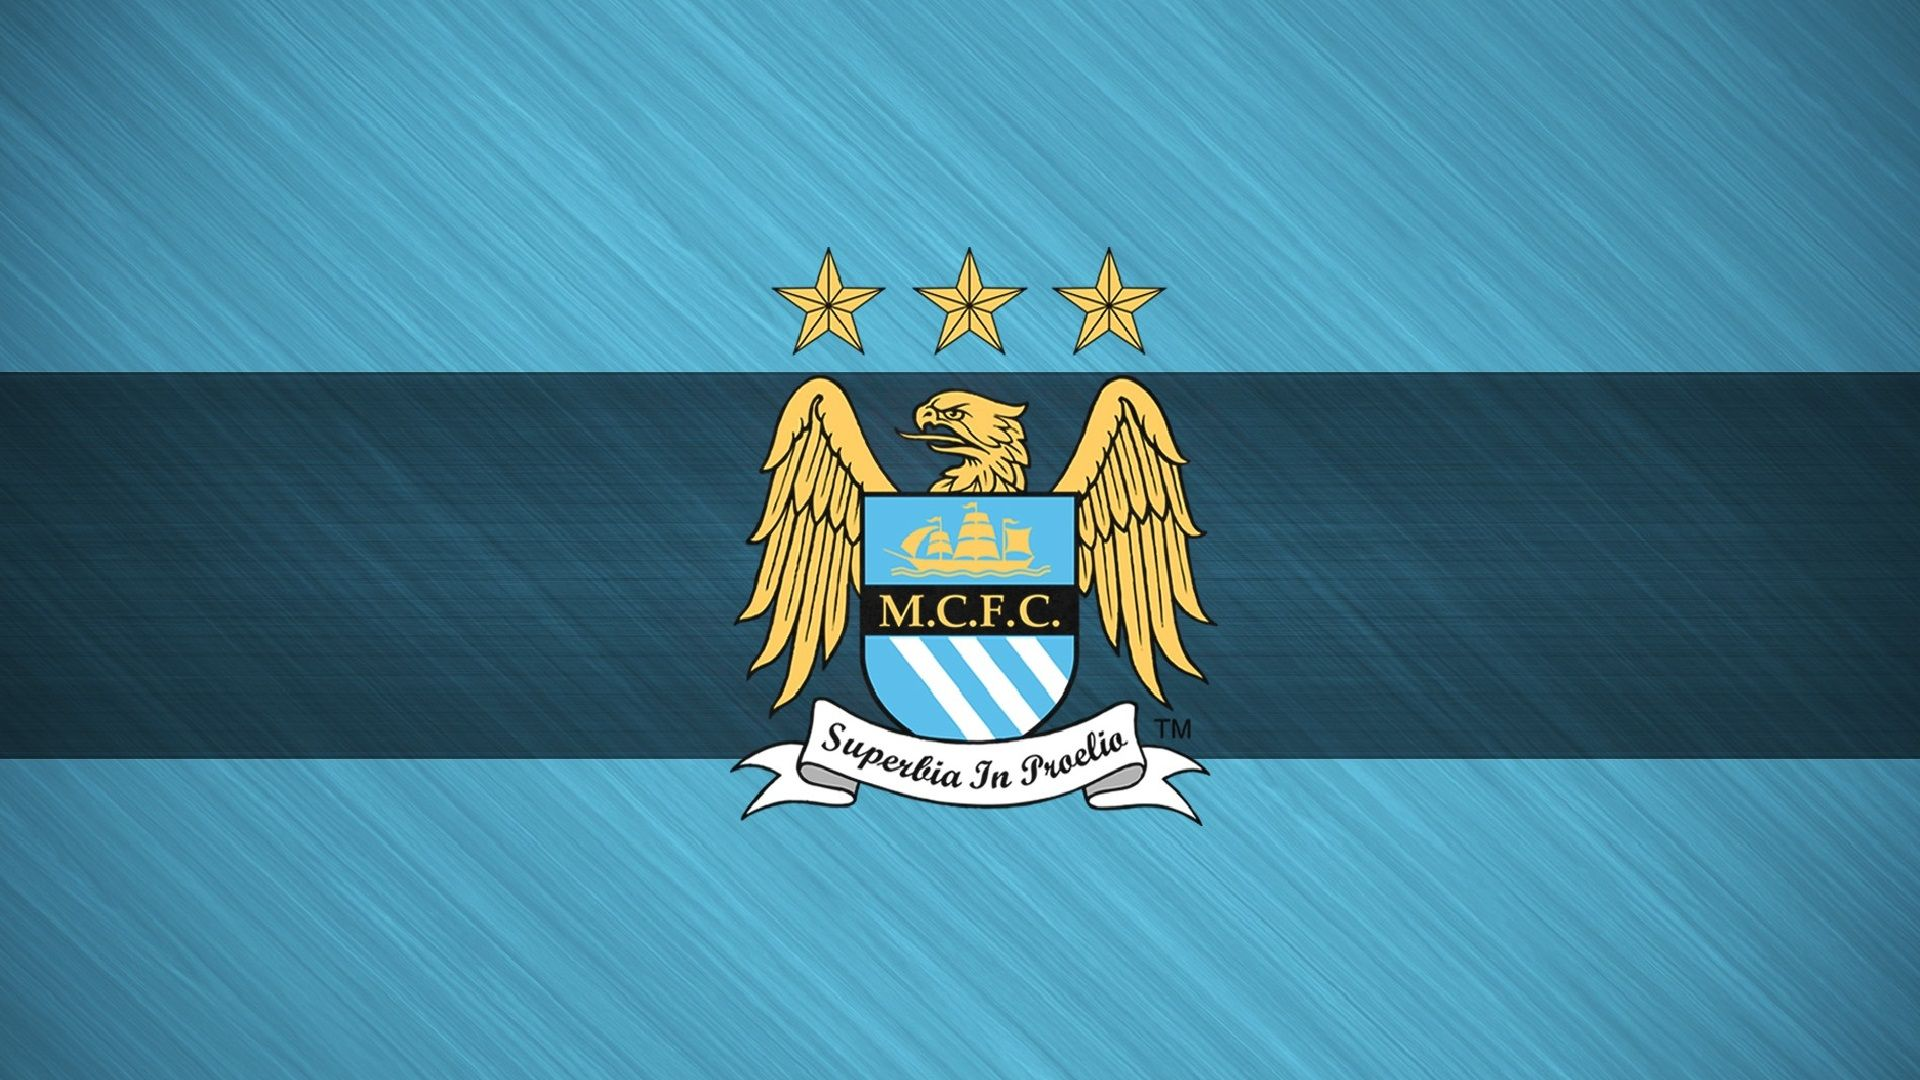 Manchester City Mac Backgrounds Best Football Wallpaper Hd Manchester City Logo Football Wallpaper Manchester City Wallpaper